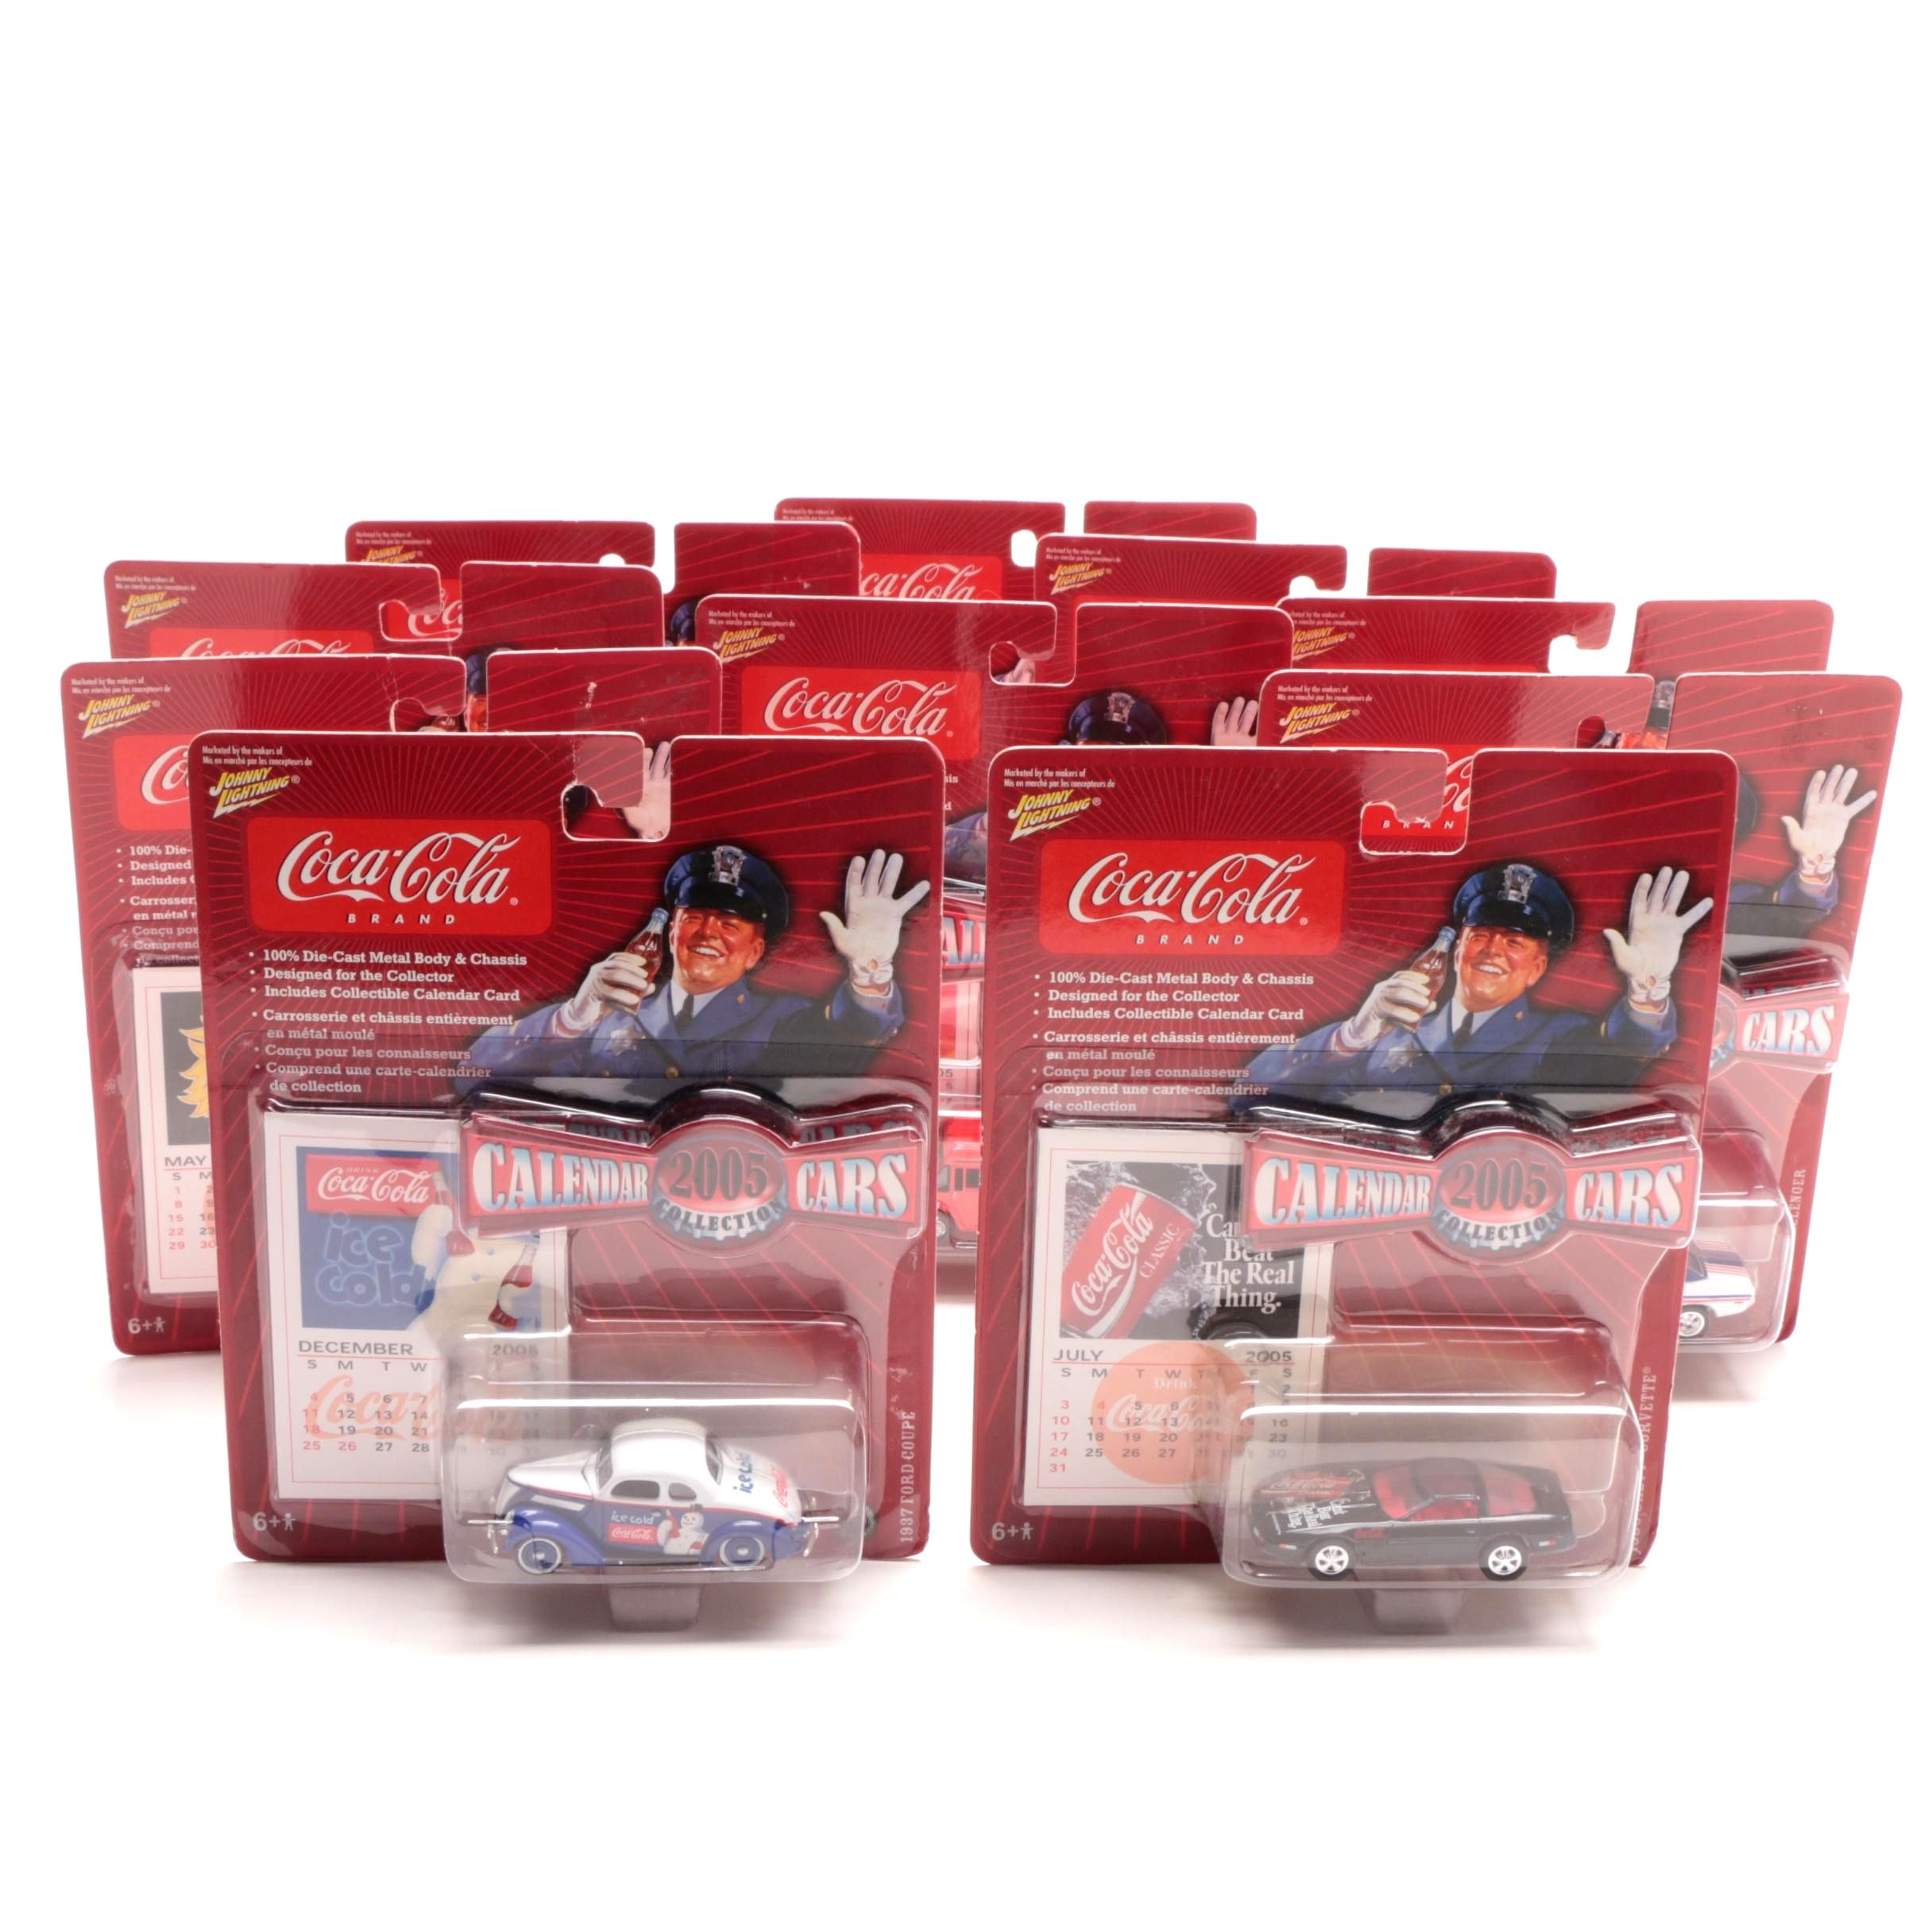 "Coca-Cola ""2005 Collection Calendar Cars"" Die-Cast Collector Cars"